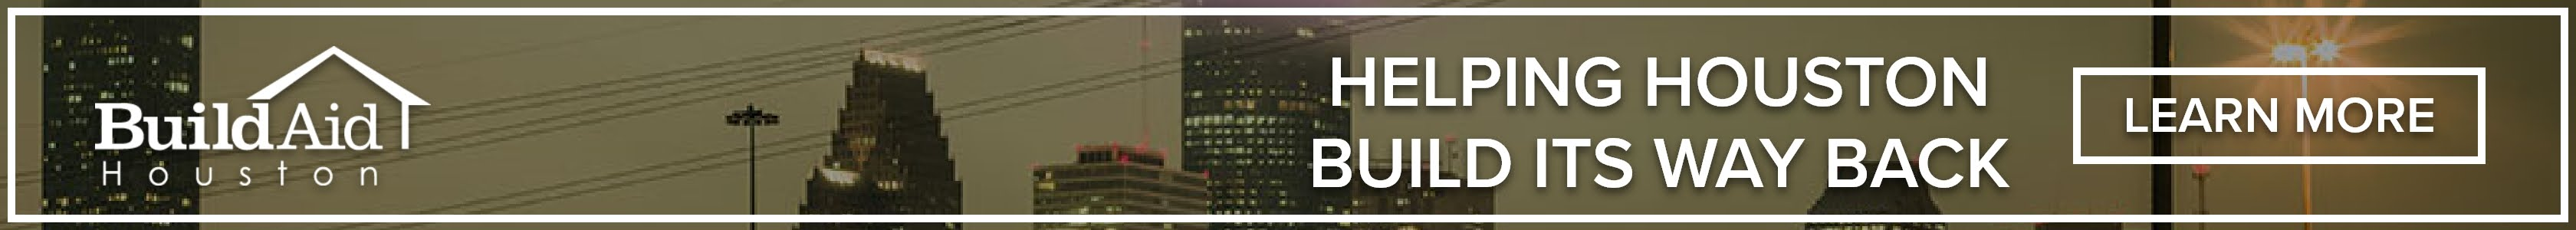 Build Aid Houston Banner